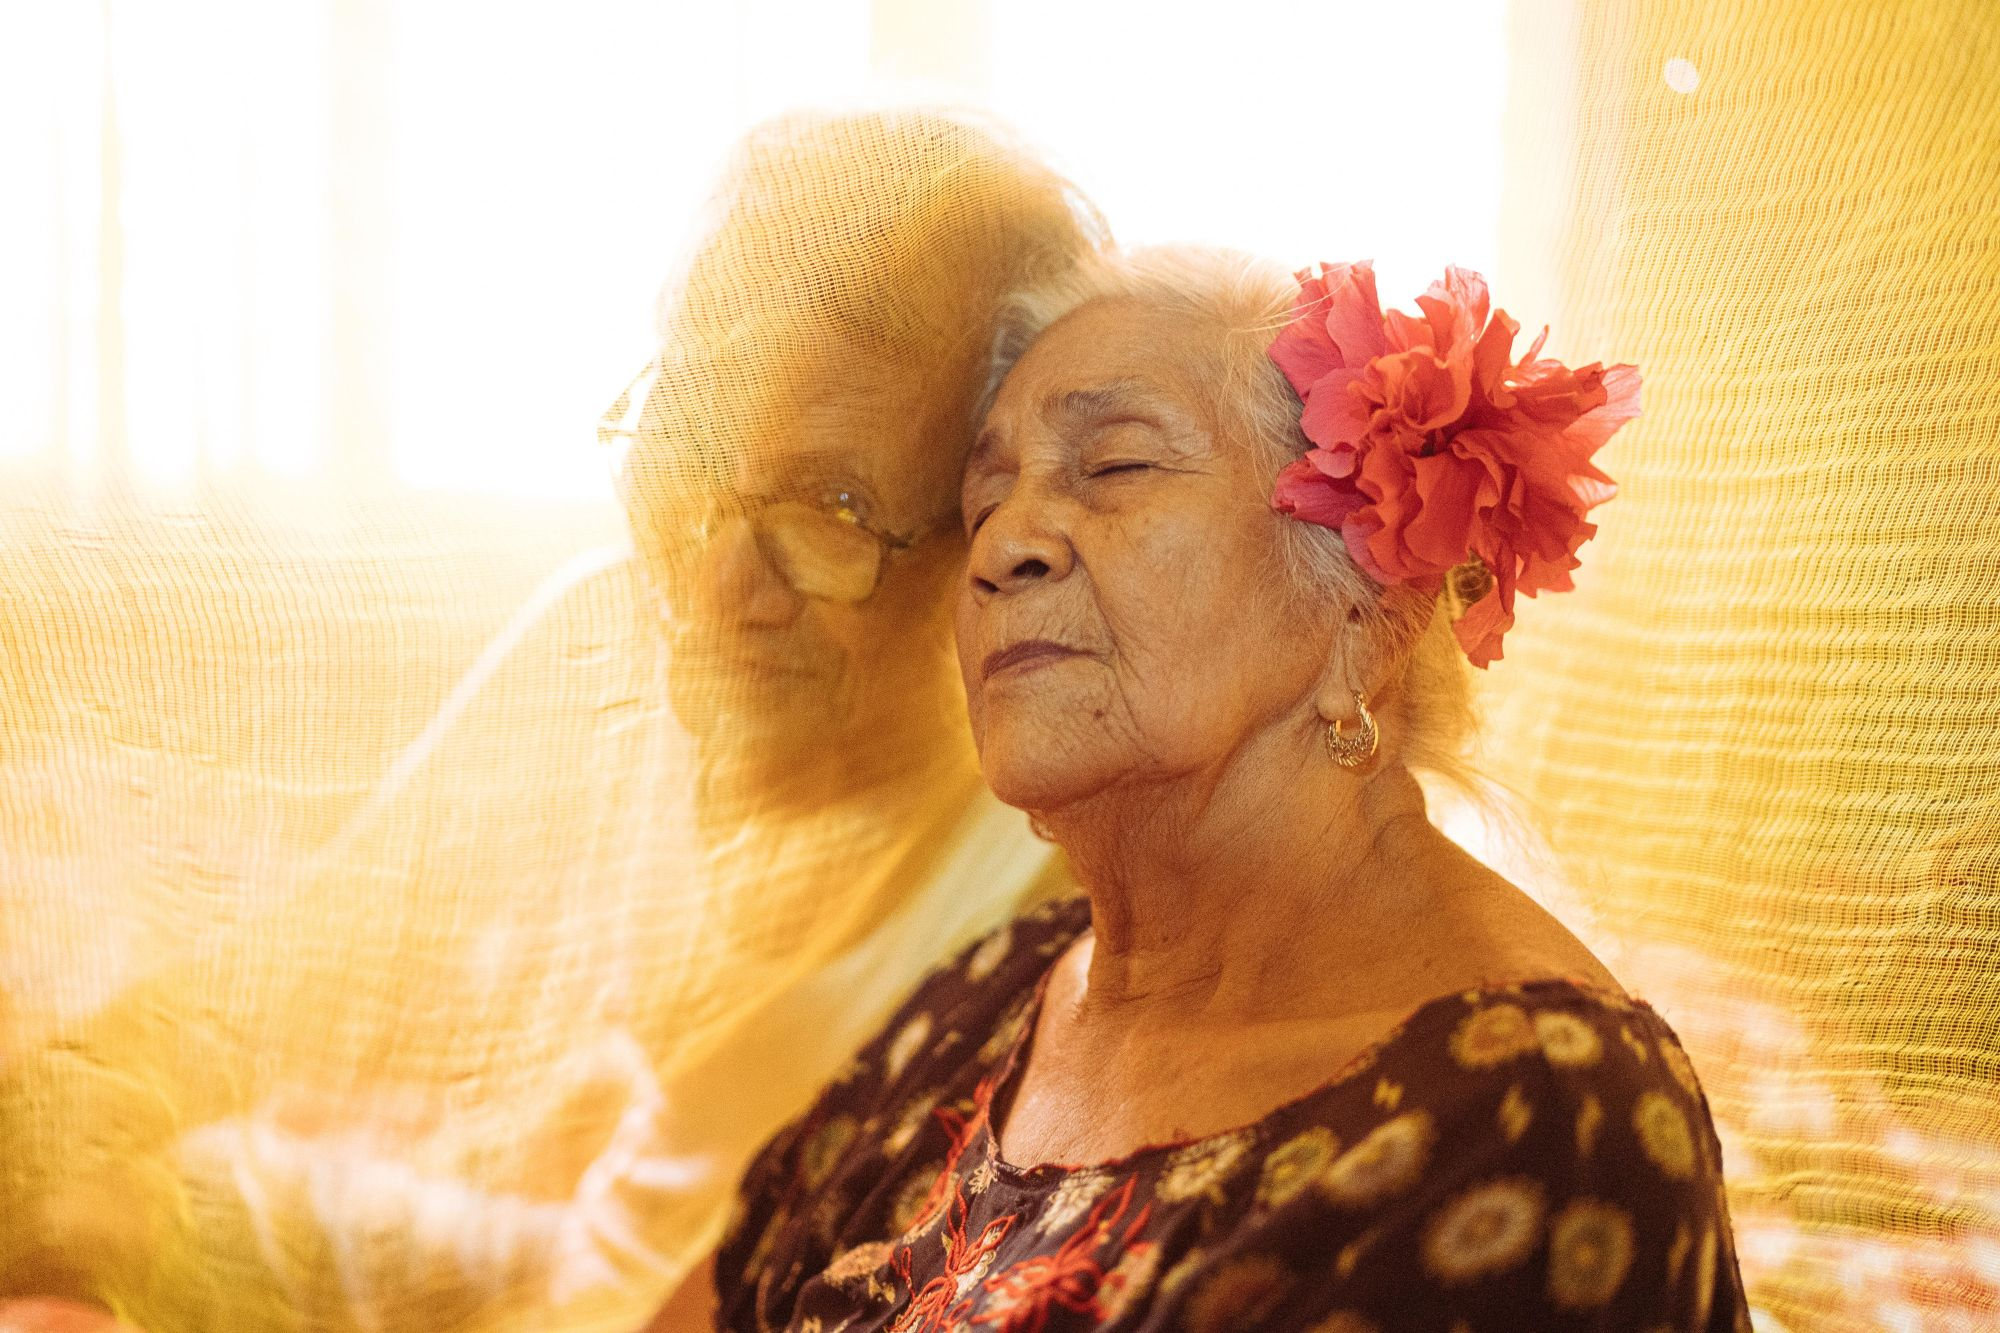 Marta poses for a photograph with her husband Apolinar in their home in Pampanga, Philippines. Martha is part of the group called 'Malaya Lolas,' or 'Free Grandmothers,' a group of survivors of mass rape during the second world war. Marta describes her husband's support as instrumental to her healing.